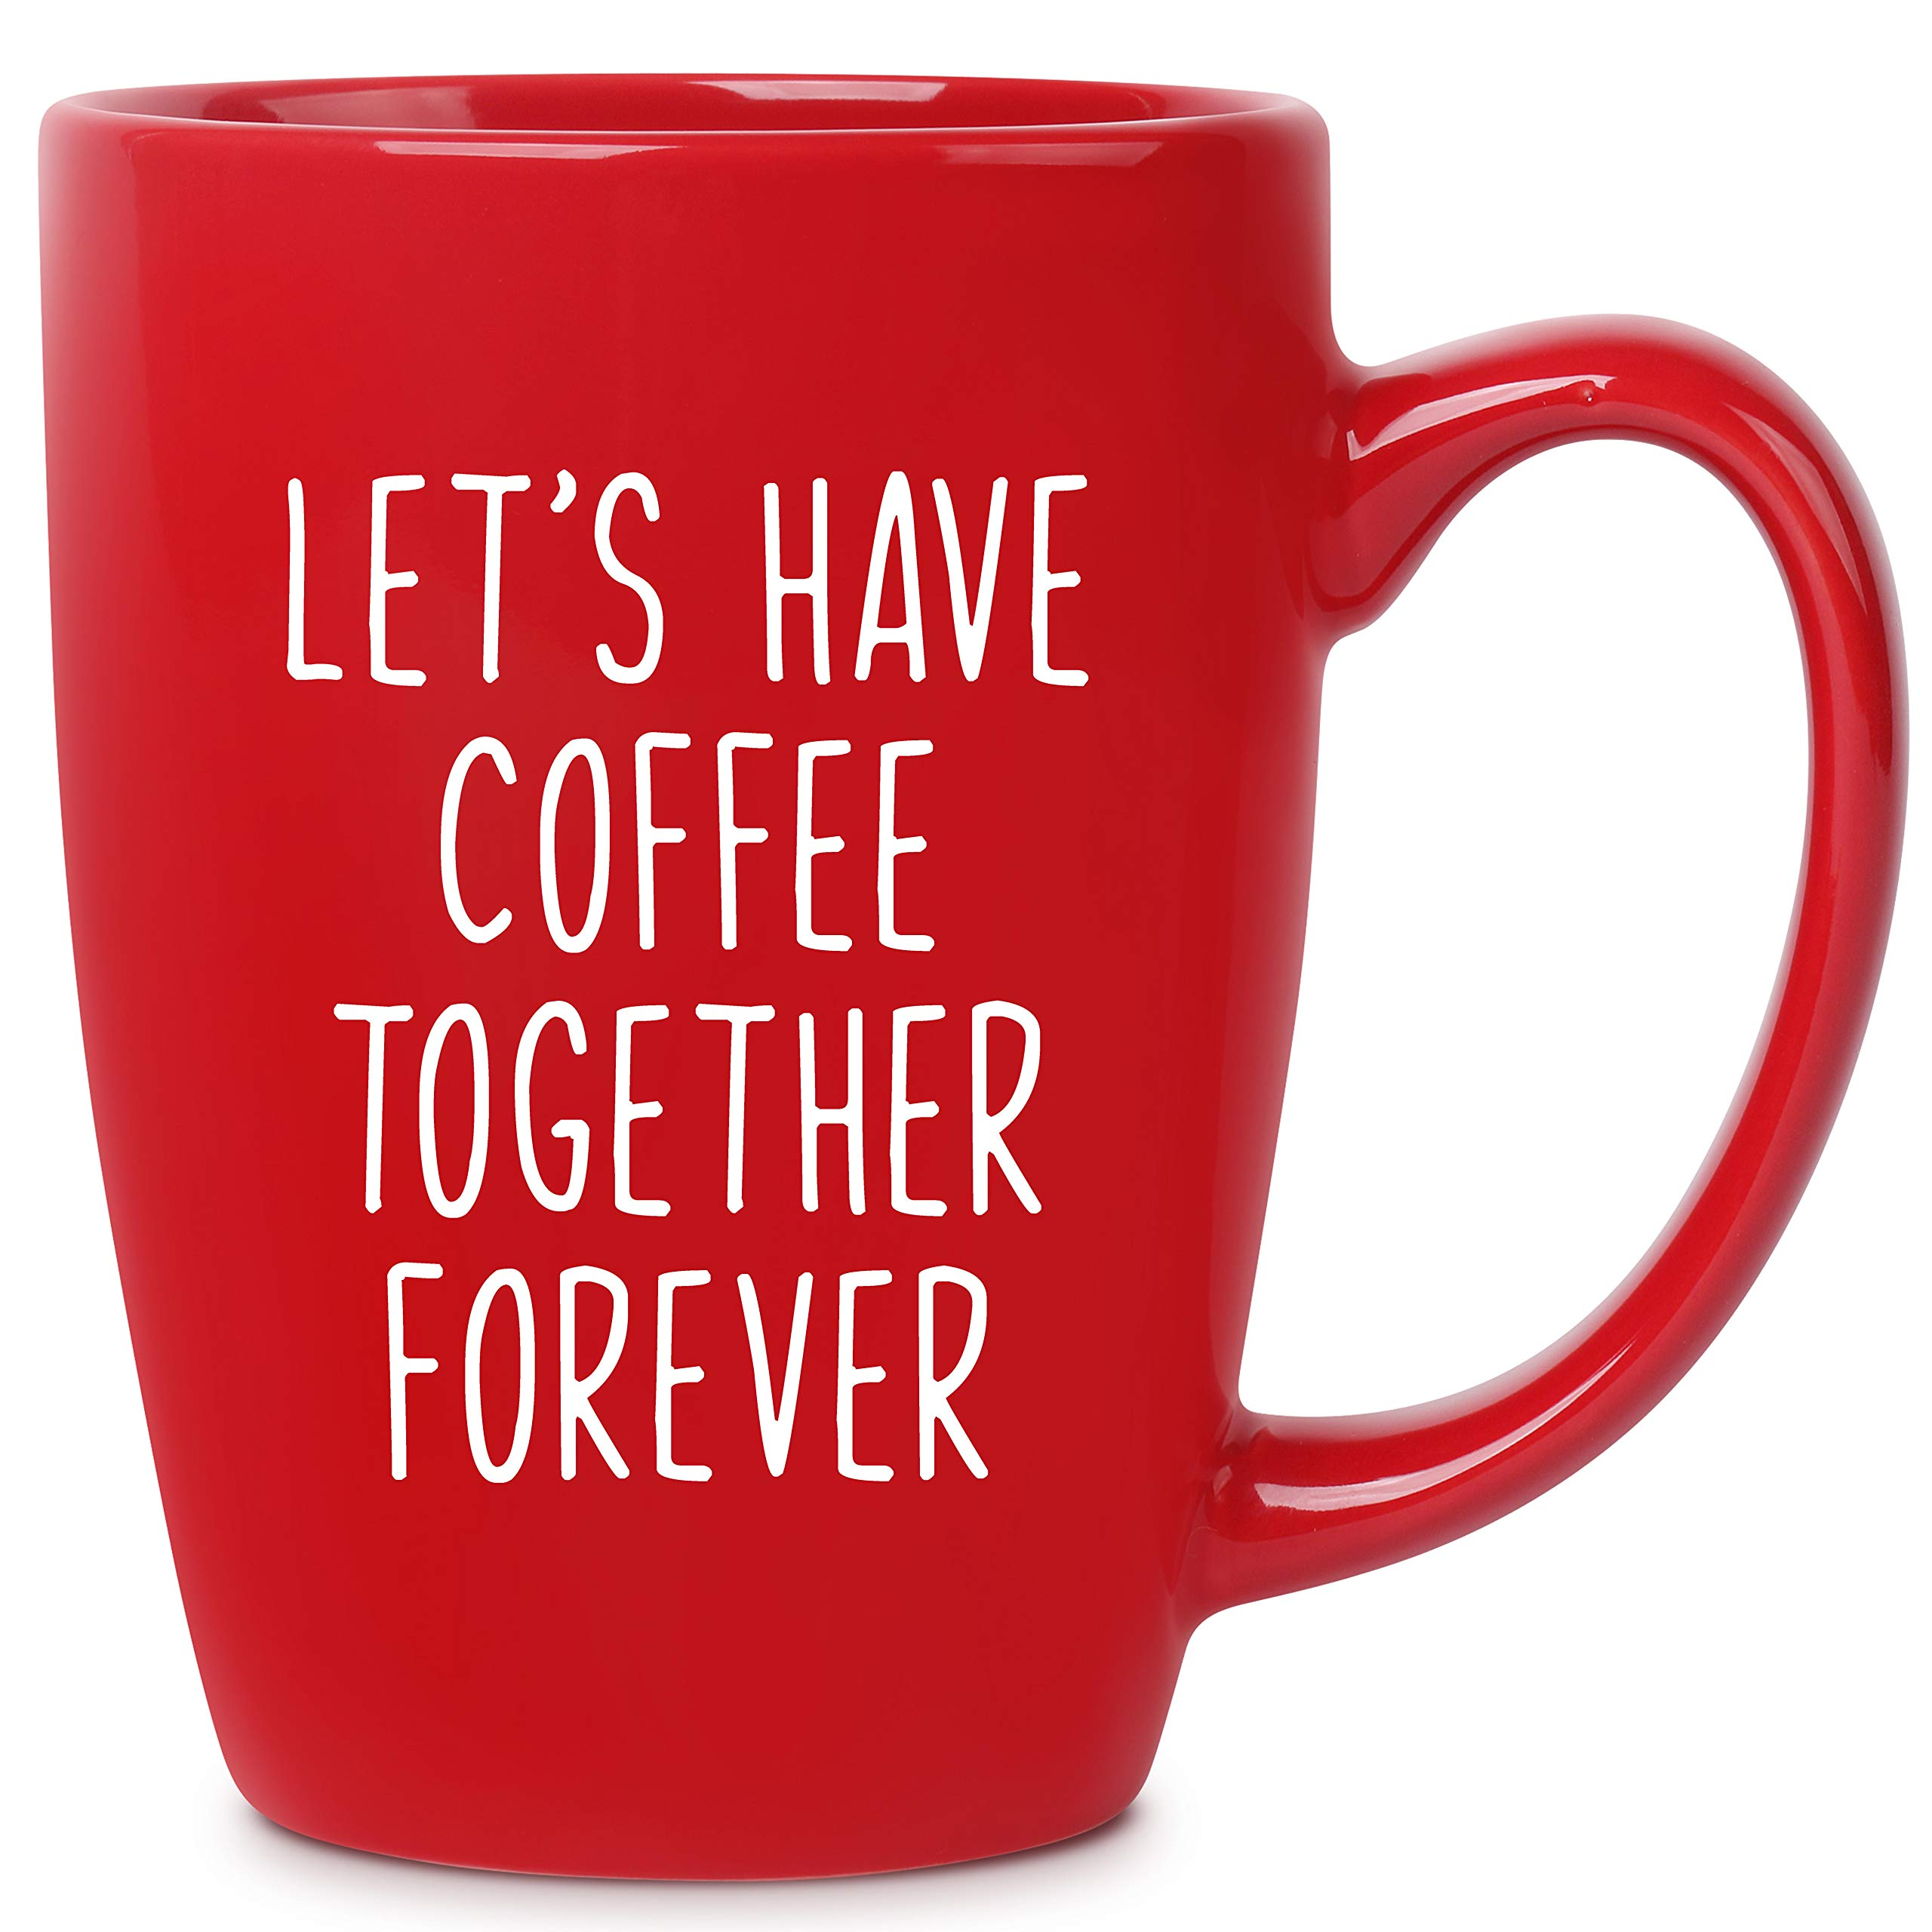 Let S Have Coffee Together Forever 14 Oz Red Bistro Coffee Mug Best Gift Ideas For Wife Husband Fiance Him Her Couple Birthday Christmas Valentines Anniversary Engagement Proposal Wedding Shower